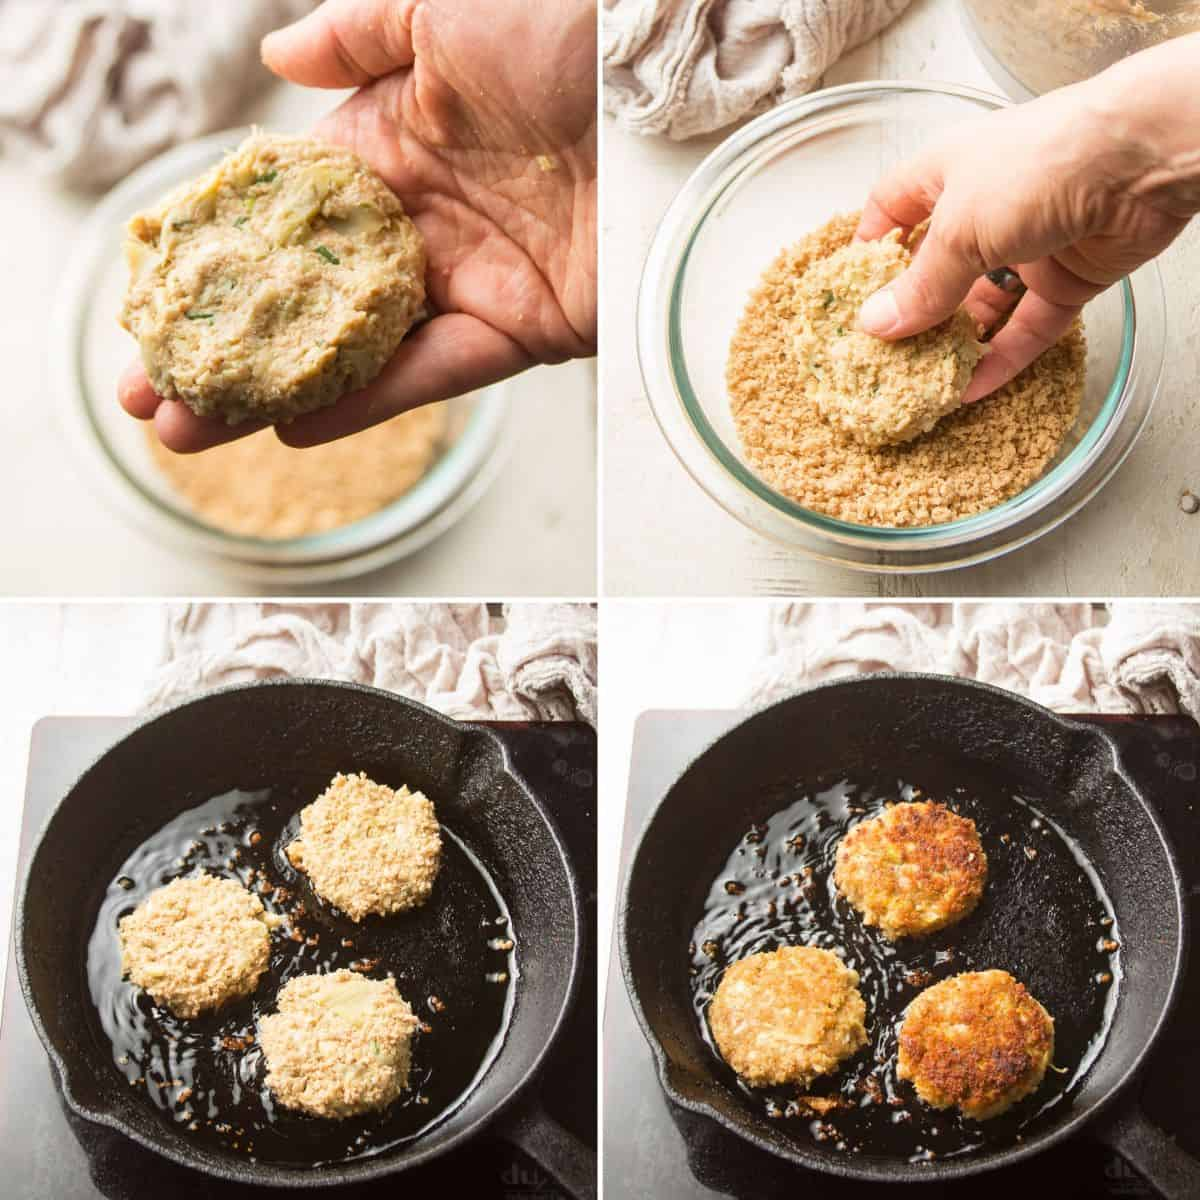 Collage Showing Steps for Cooking Vegan Crab Cakes: Shape Patties, Dip in Panko, And Fry on Both Sides